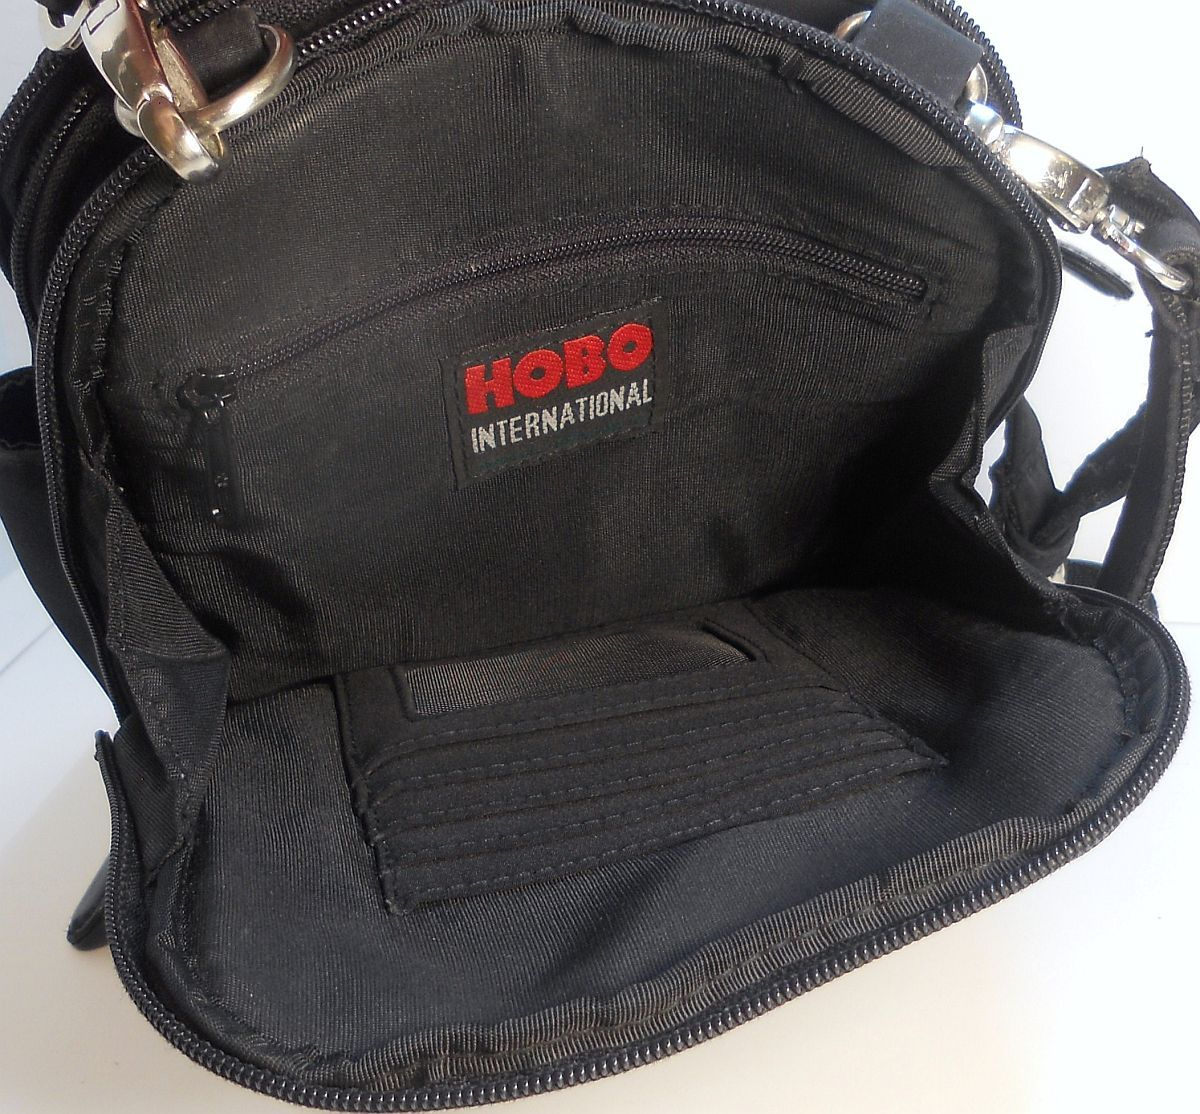 Hobo International Crossbody shoulder organizer travel bag